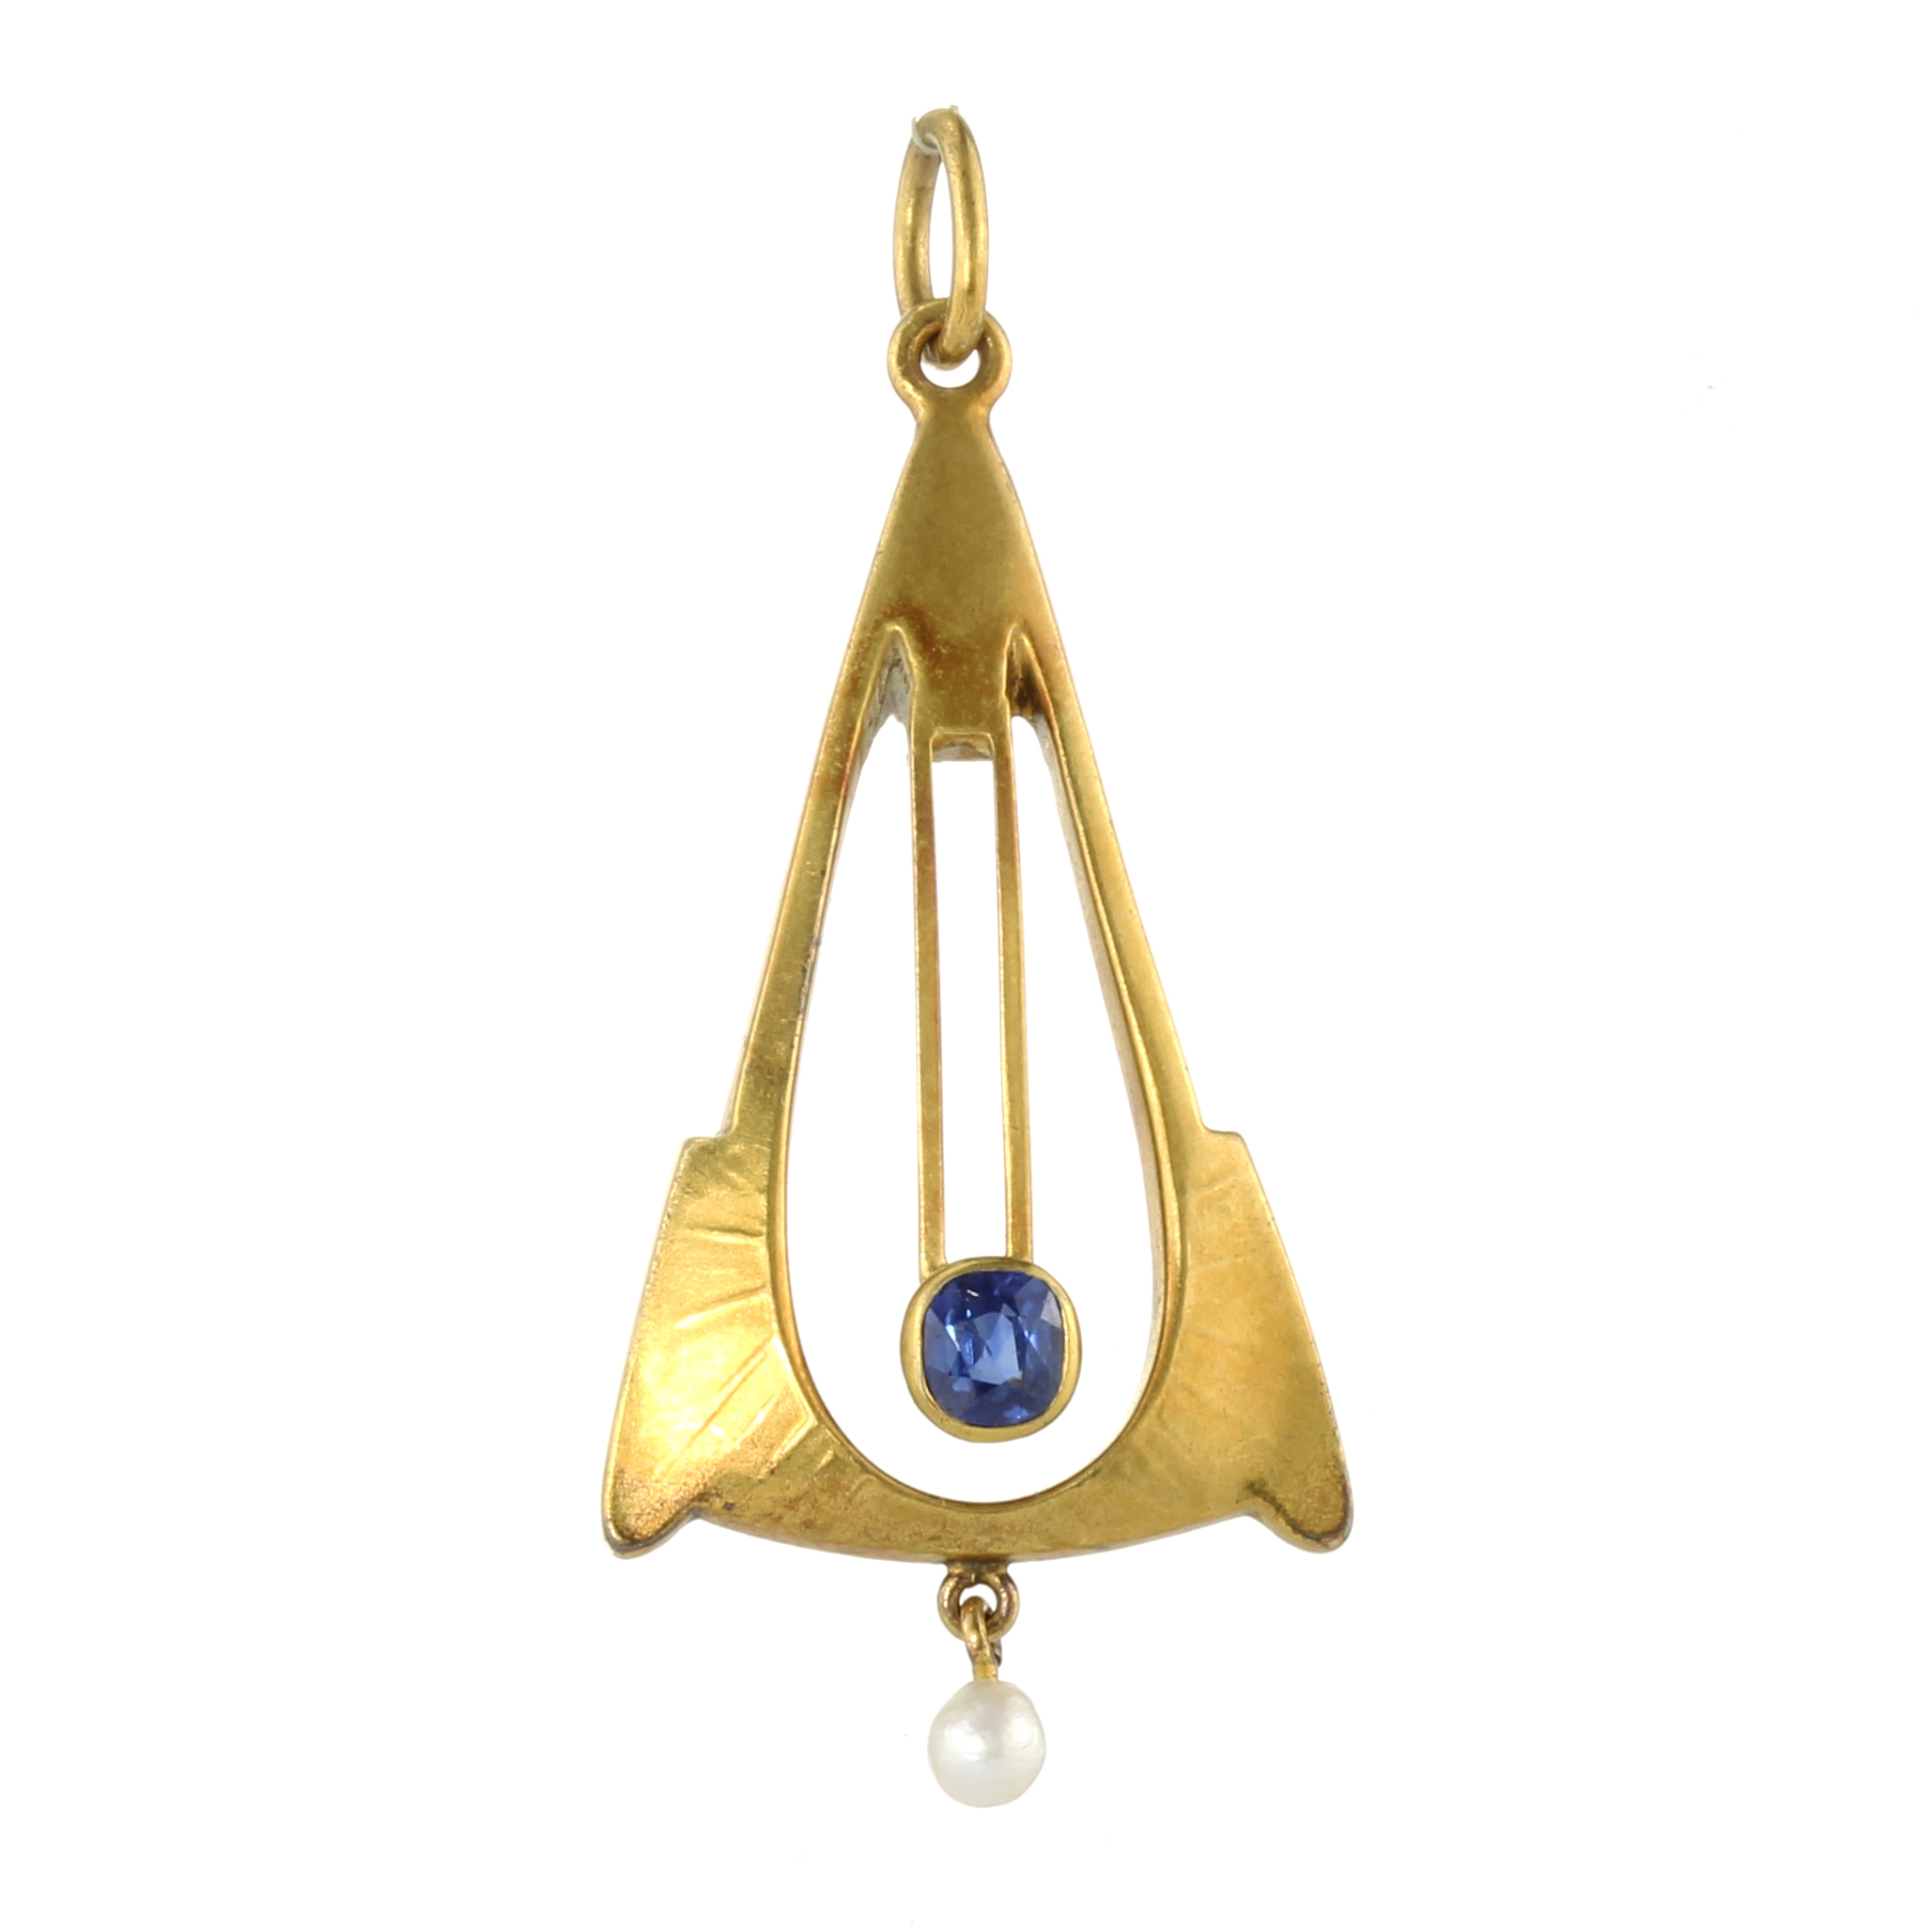 AN ANTIQUE ART NOUVEAU SAPPHIRE AND PEARL PENDANT in 14ct yellow gold set with a central cushion cut